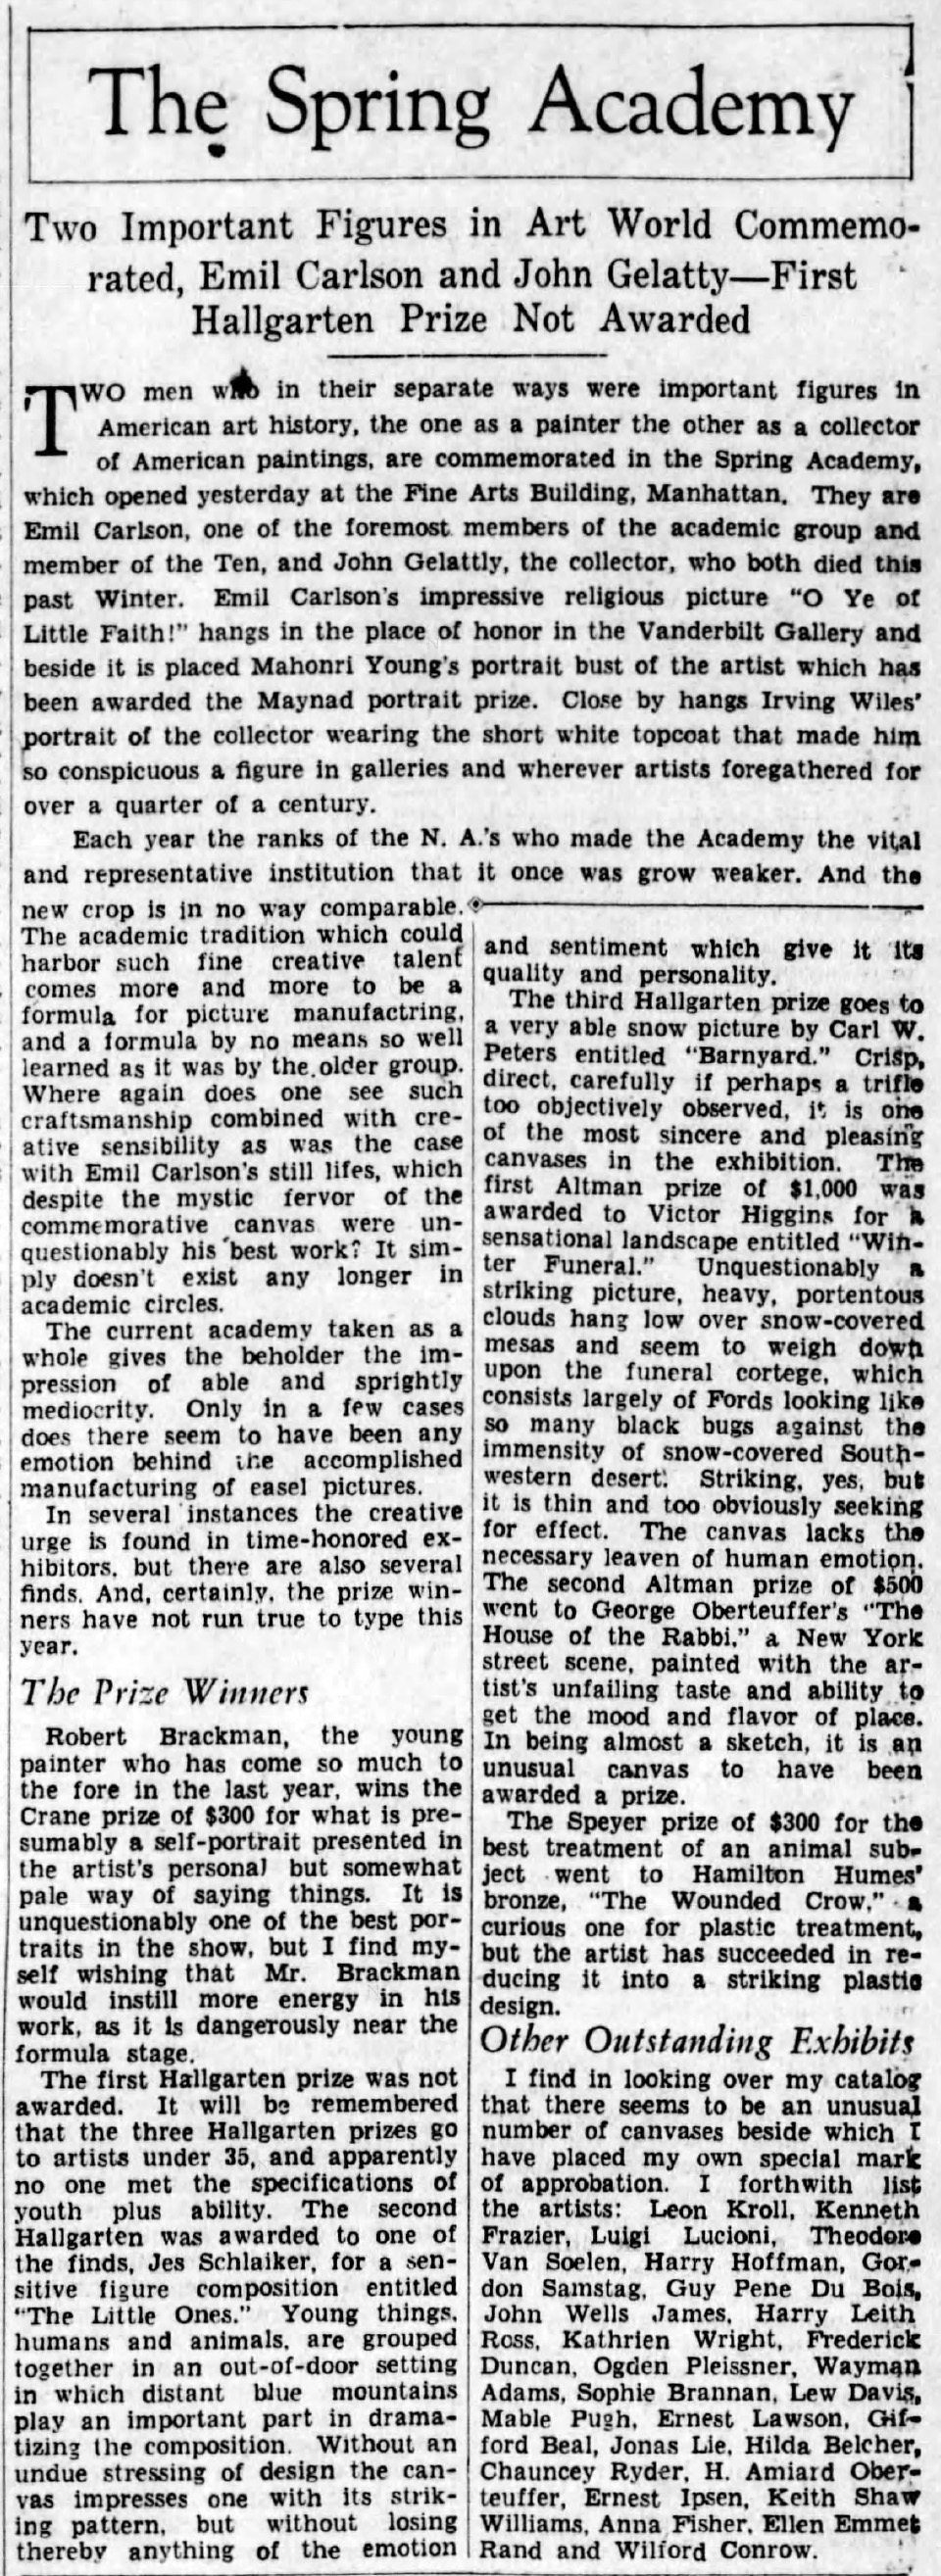 "The Brooklyn Daily Eagle, Brooklyn, NY, ""The spring academy : Two important figures in art world commemorated, Emil Carlson [sic] and John Gelatty—first Hallgarten prize not awarded"", Sunday, March 27, 1932, page 58, not illustrated"